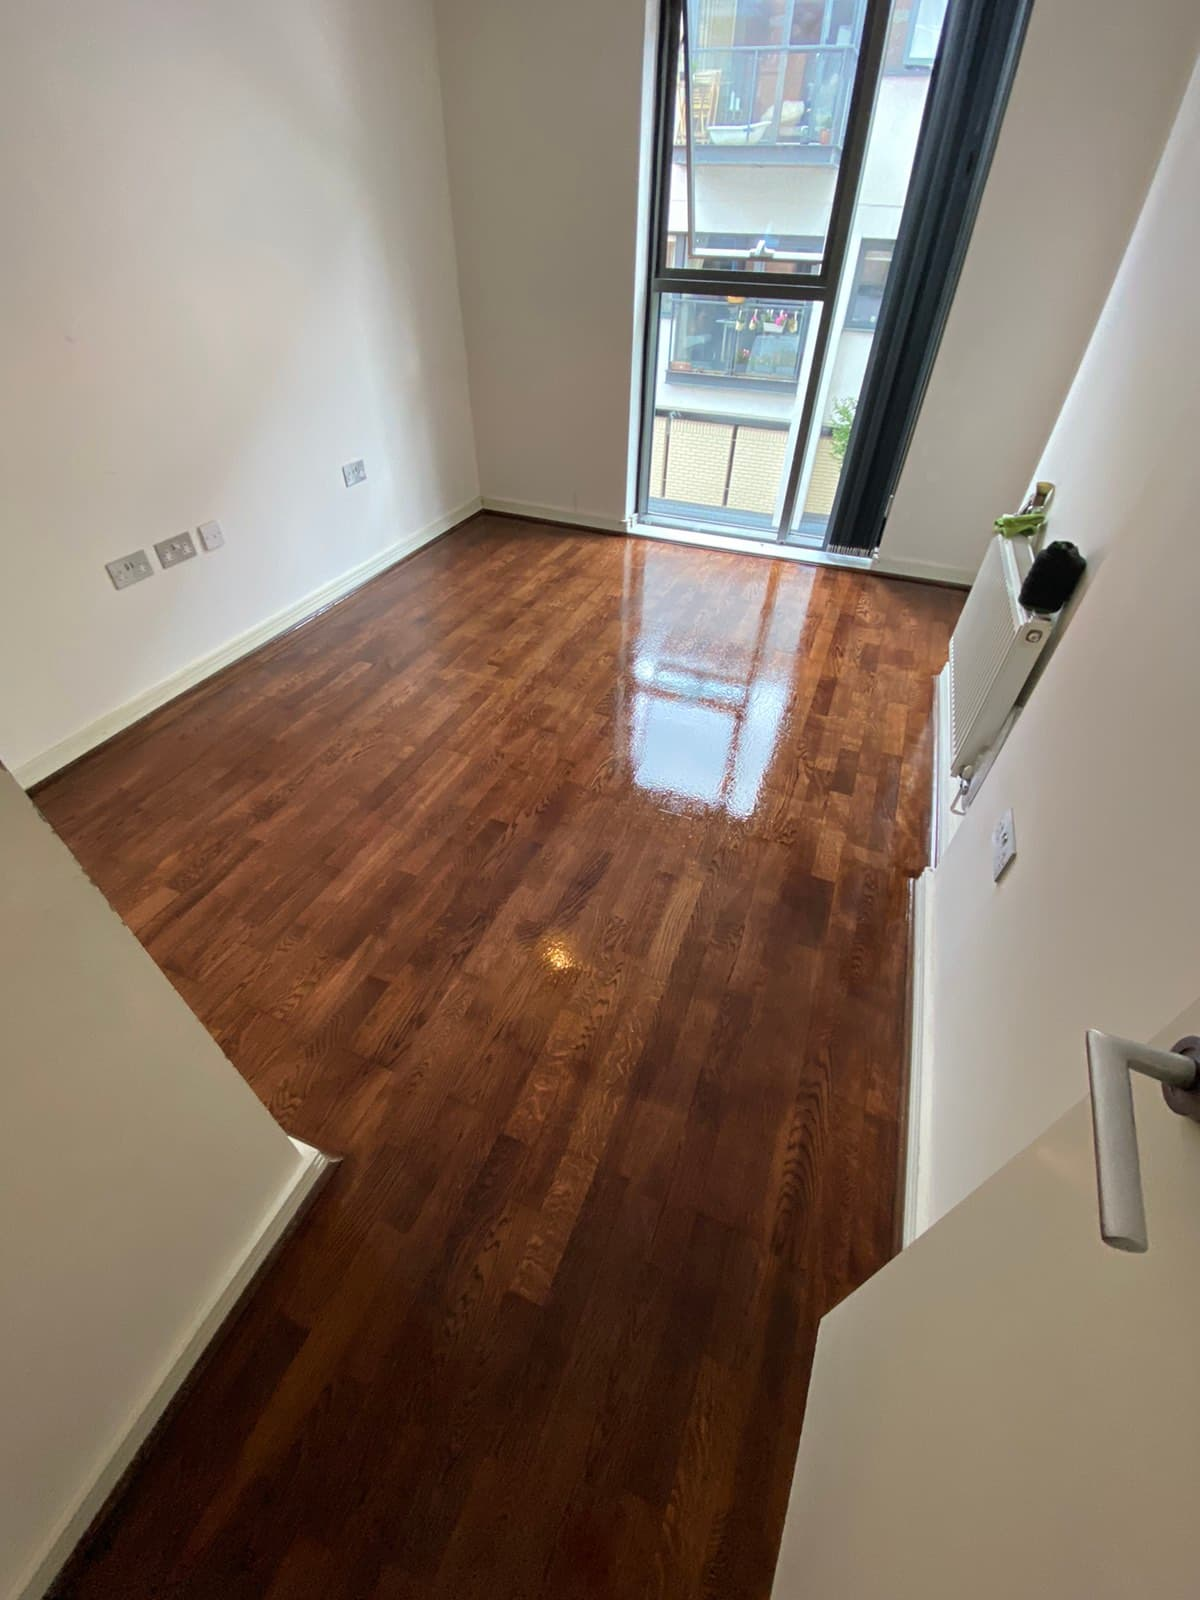 completely sanded and polished wooden floor